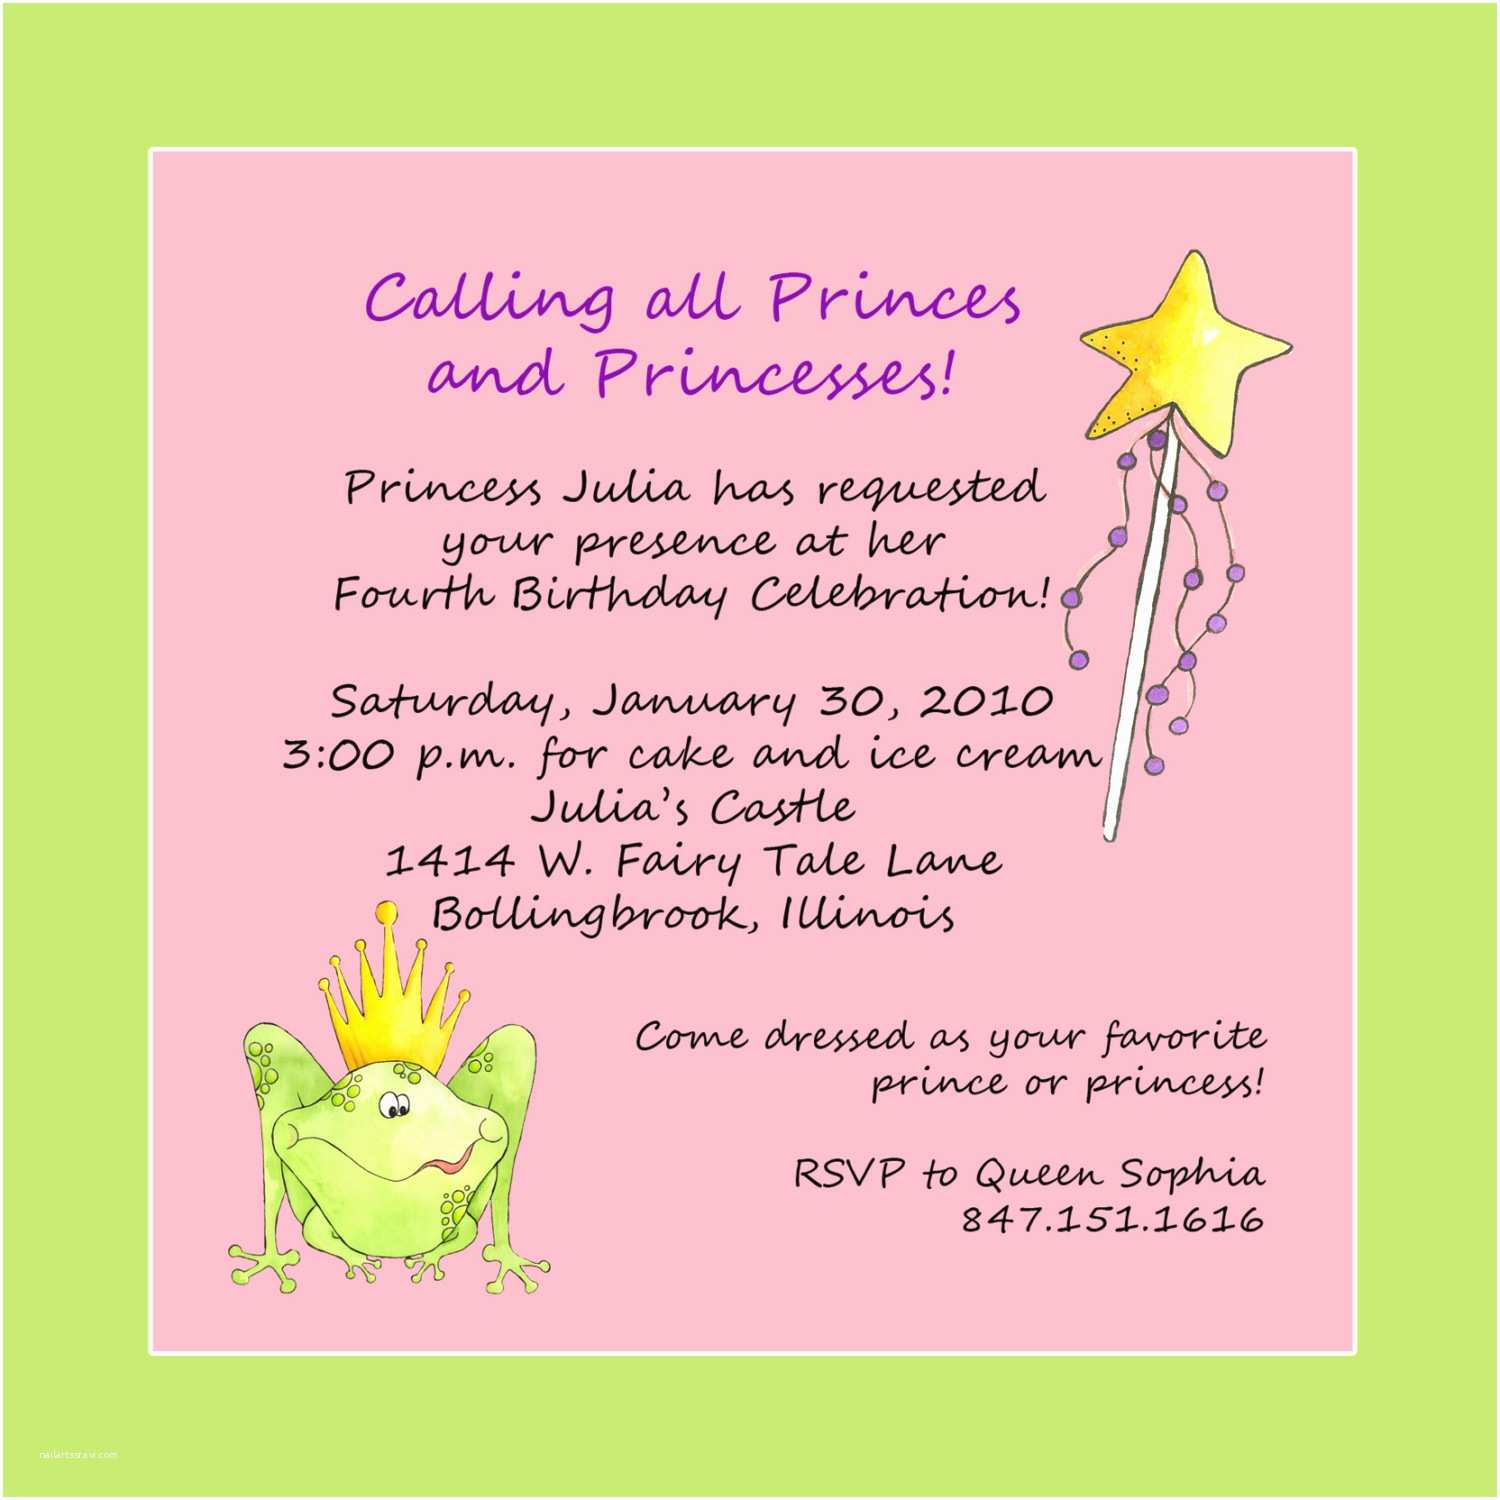 Sample Birthday Invitation Invites How To Make Party Invite